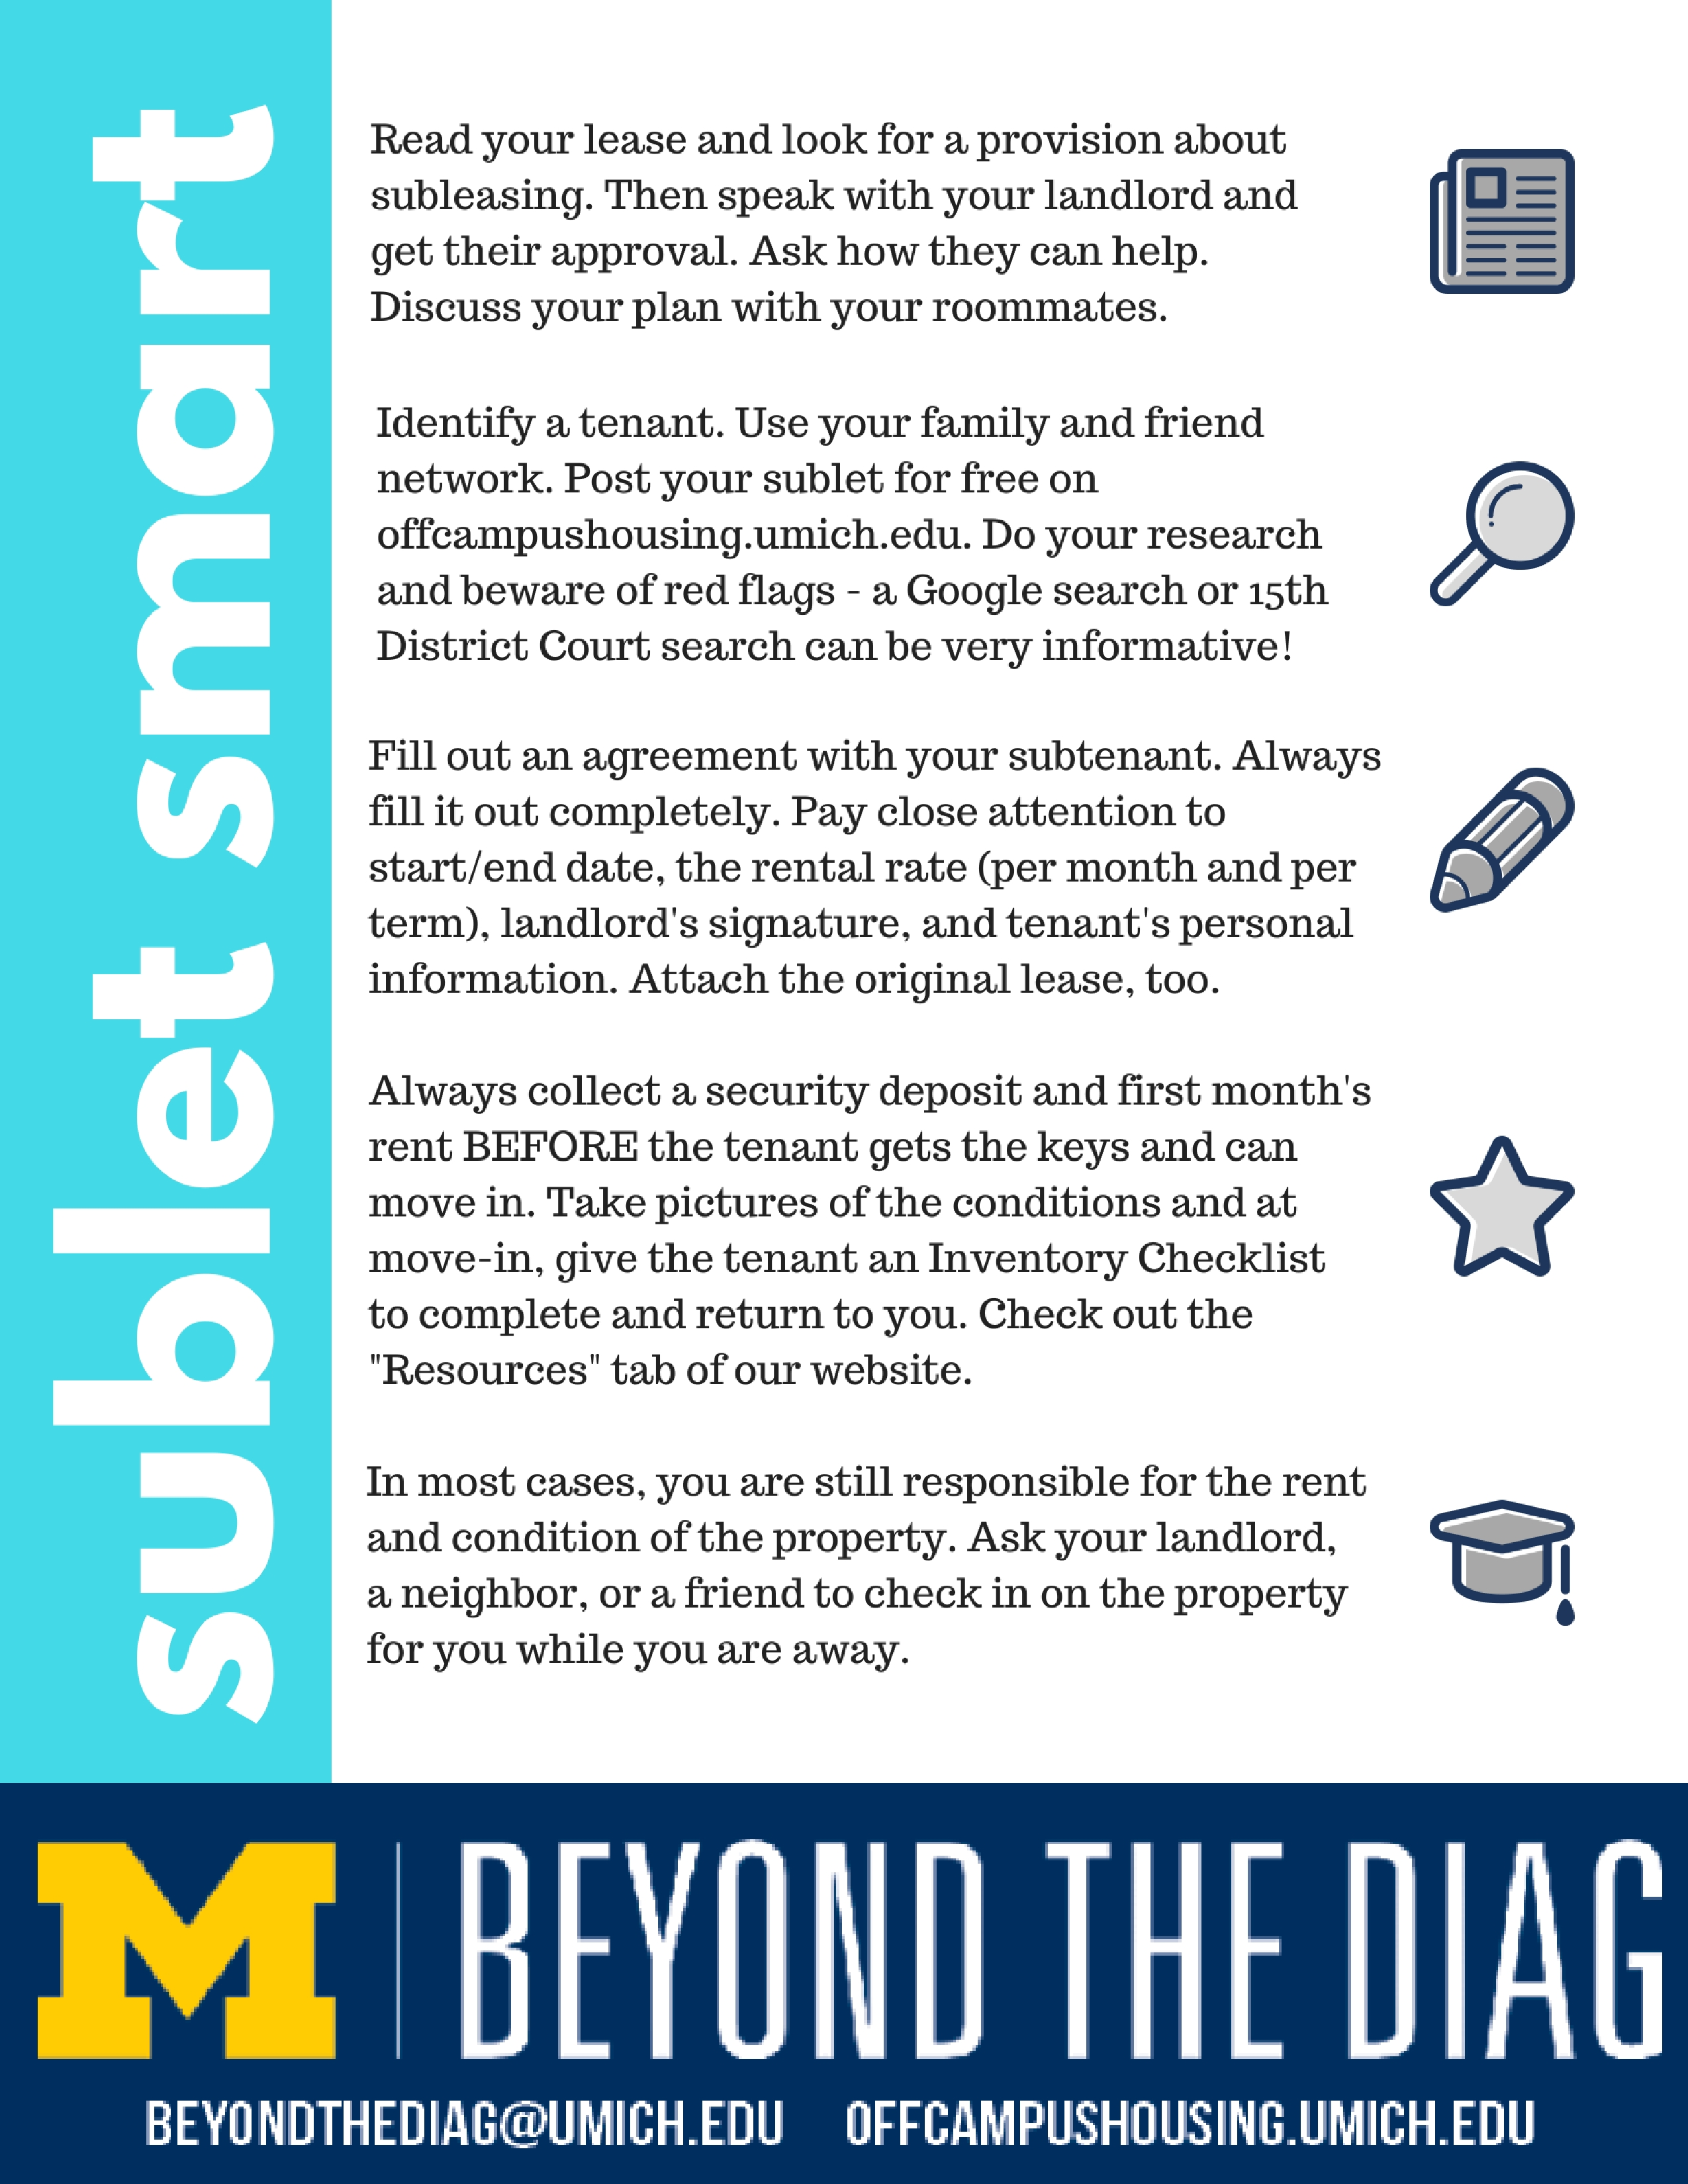 Sublet Smart and Don't Get Scammed | Beyond the Diag - Off